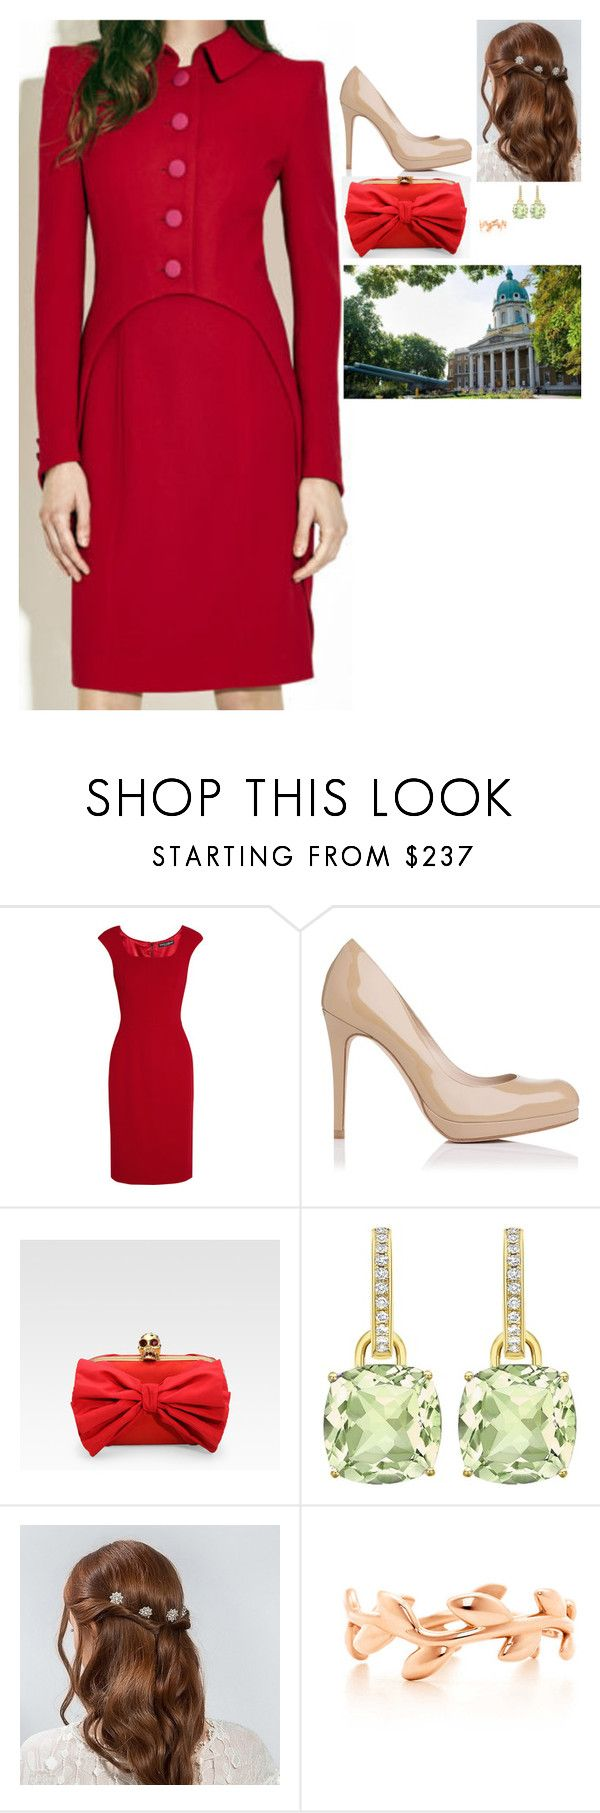 """Visiting the Imperial War Museum in London in honour of their 100th anniversary"" by fashion-royalty ❤ liked on Polyvore featuring Dolce&Gabbana, L.K.Bennett, Alexander McQueen and Paloma Picasso"